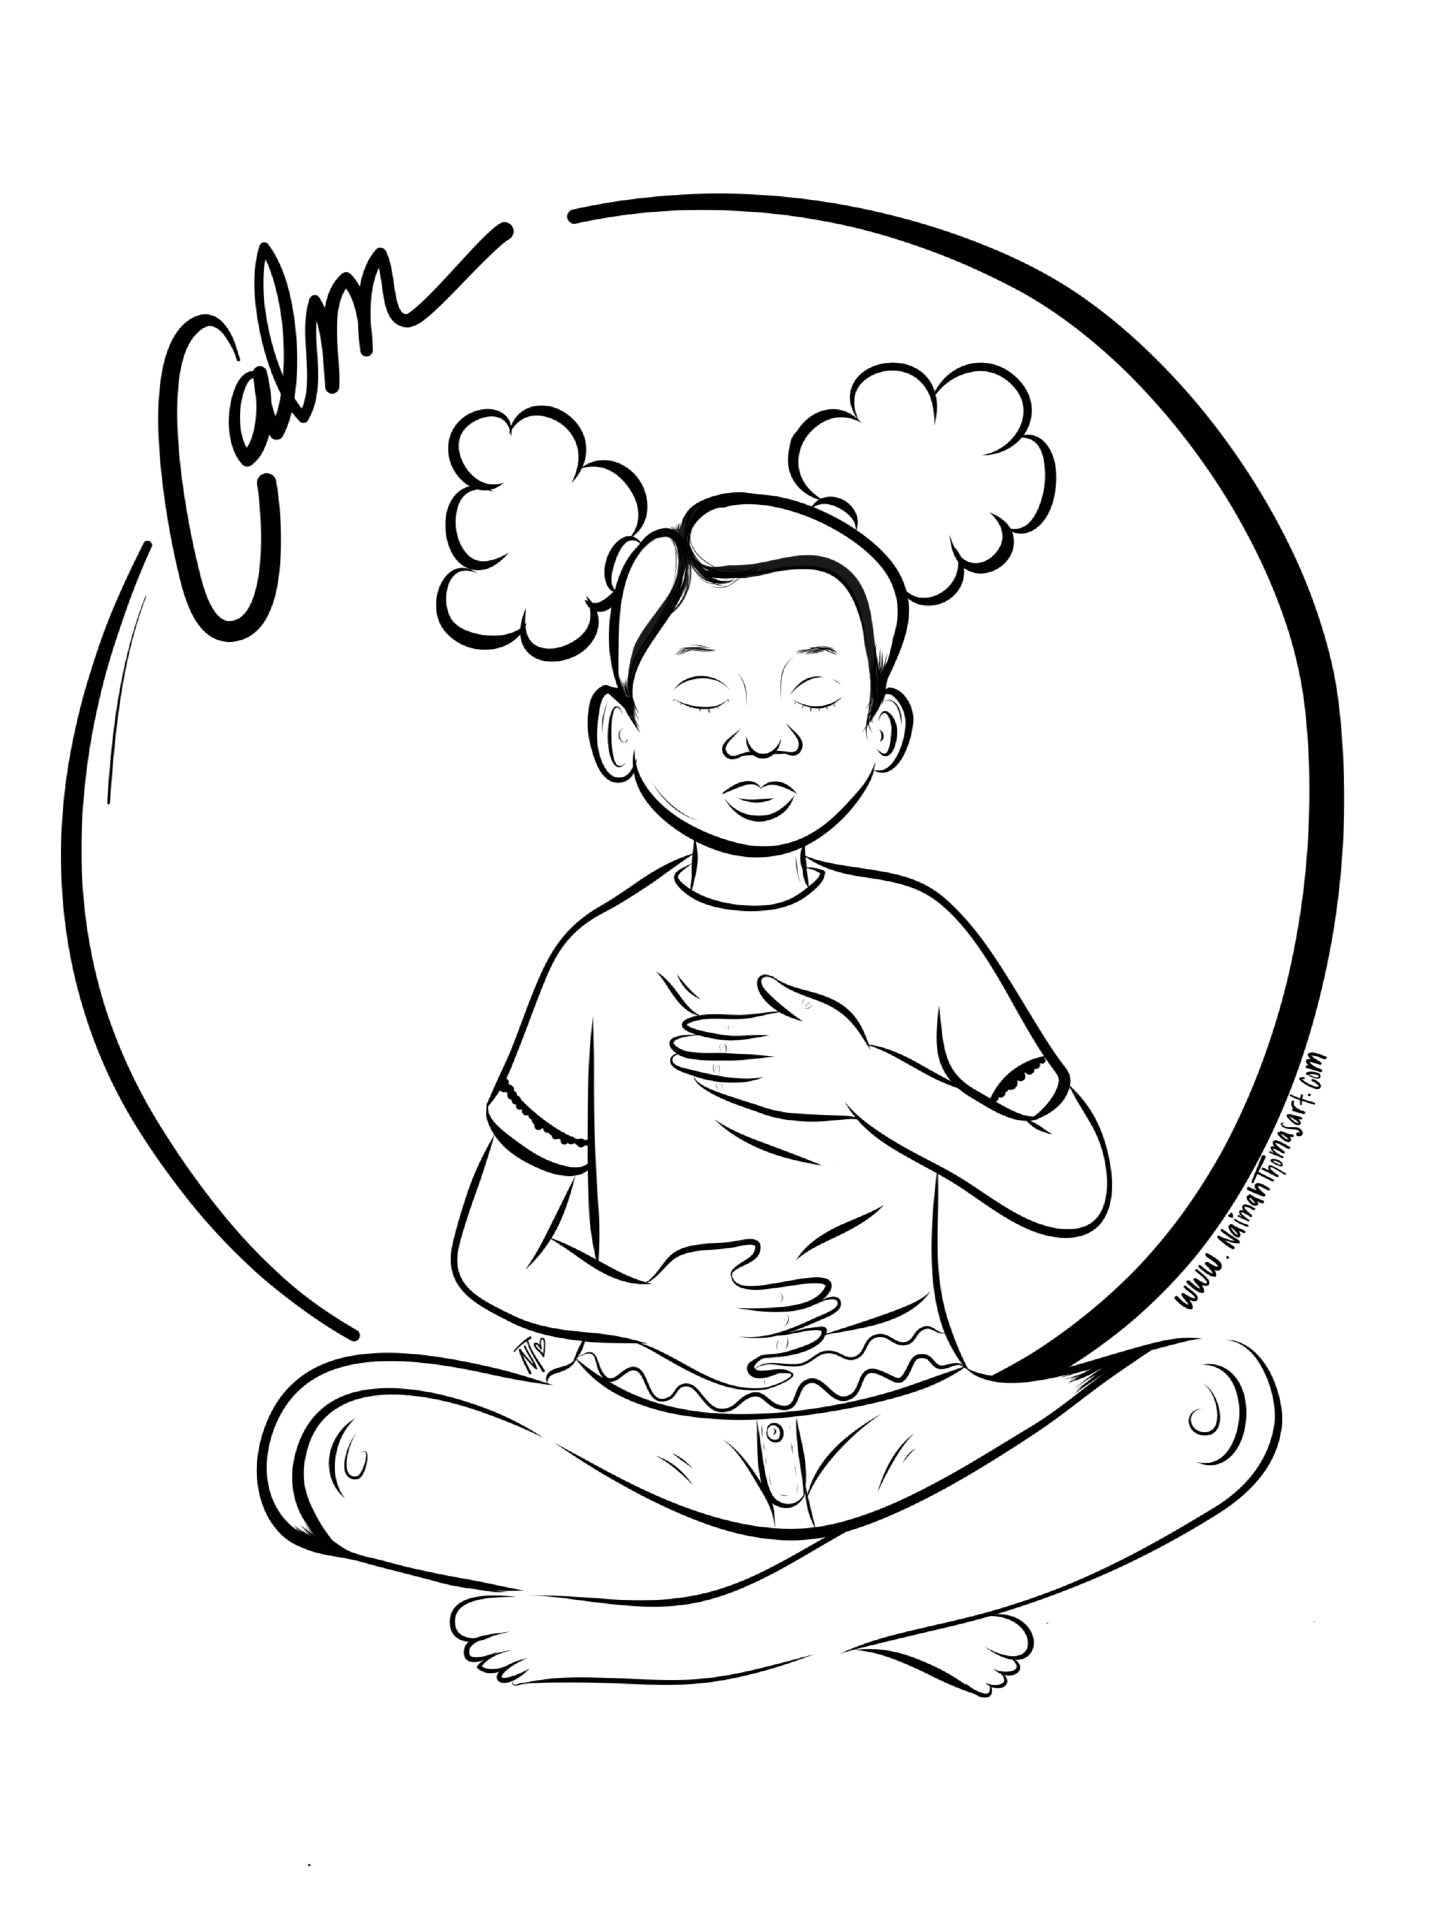 Calm Black Girl Coloring Page